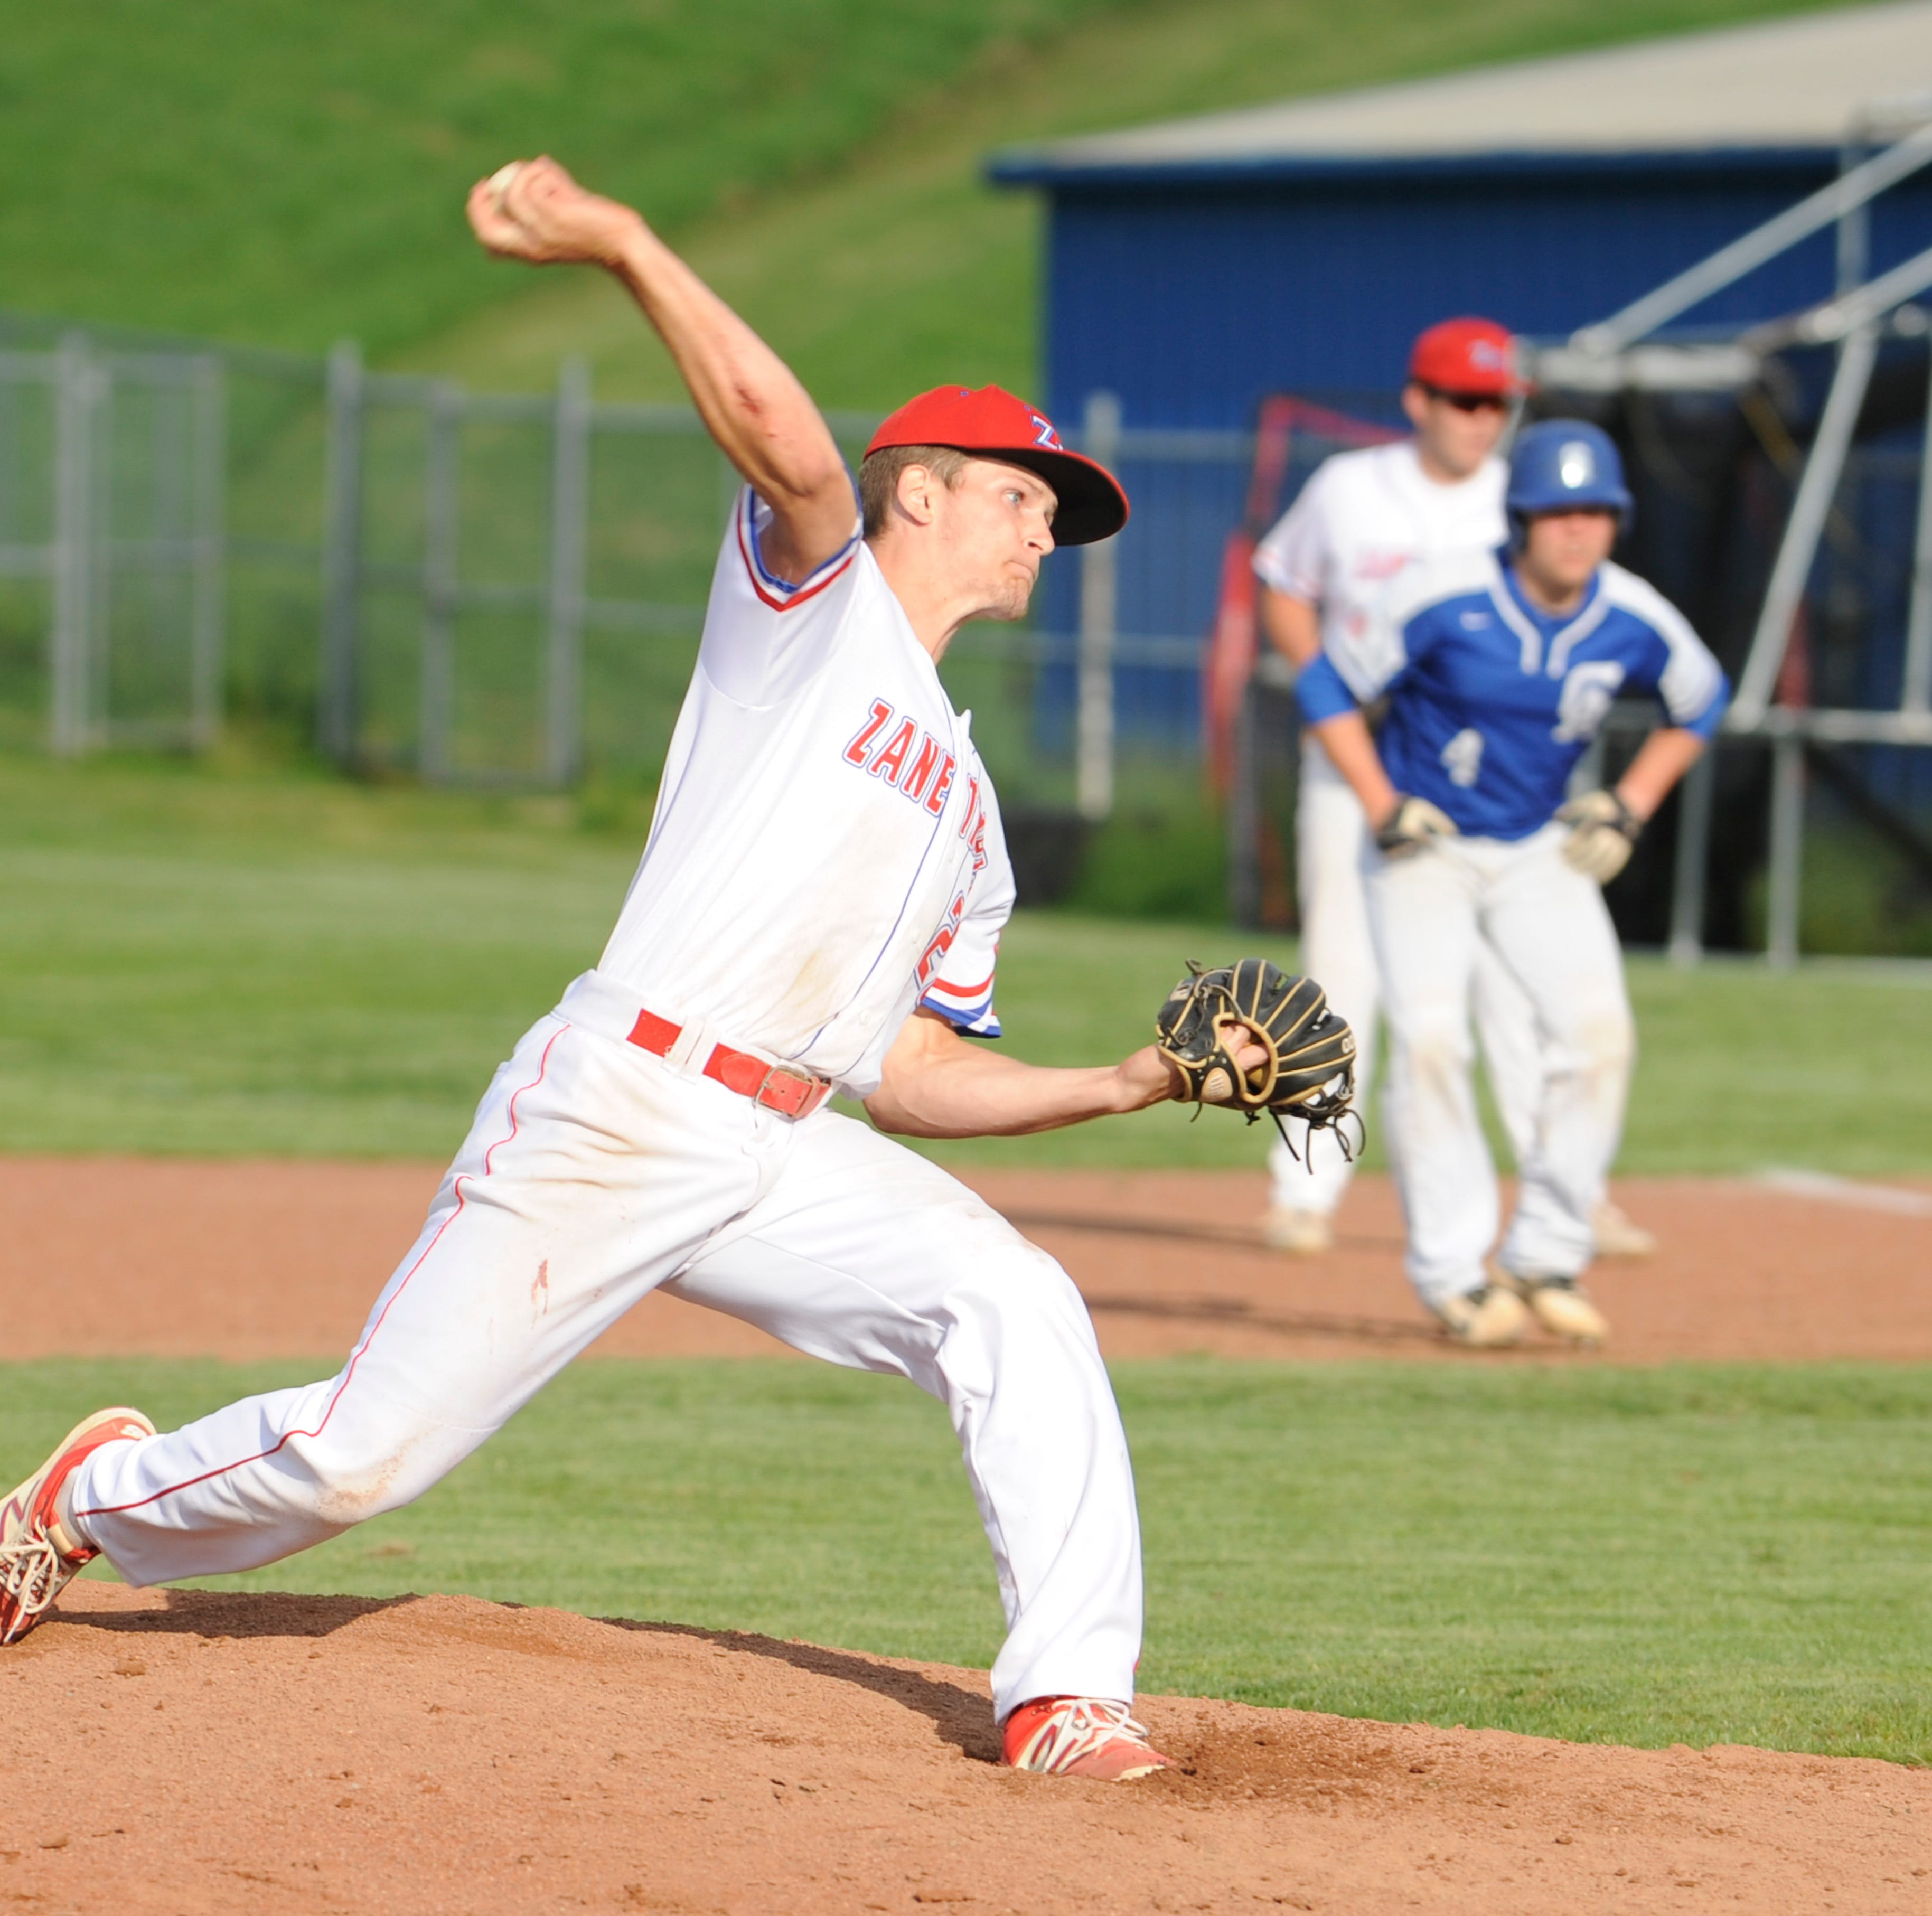 OHIO HS BASEBALL: Zane Trace wins sectional semifinal 6-4 over Gallia Academy